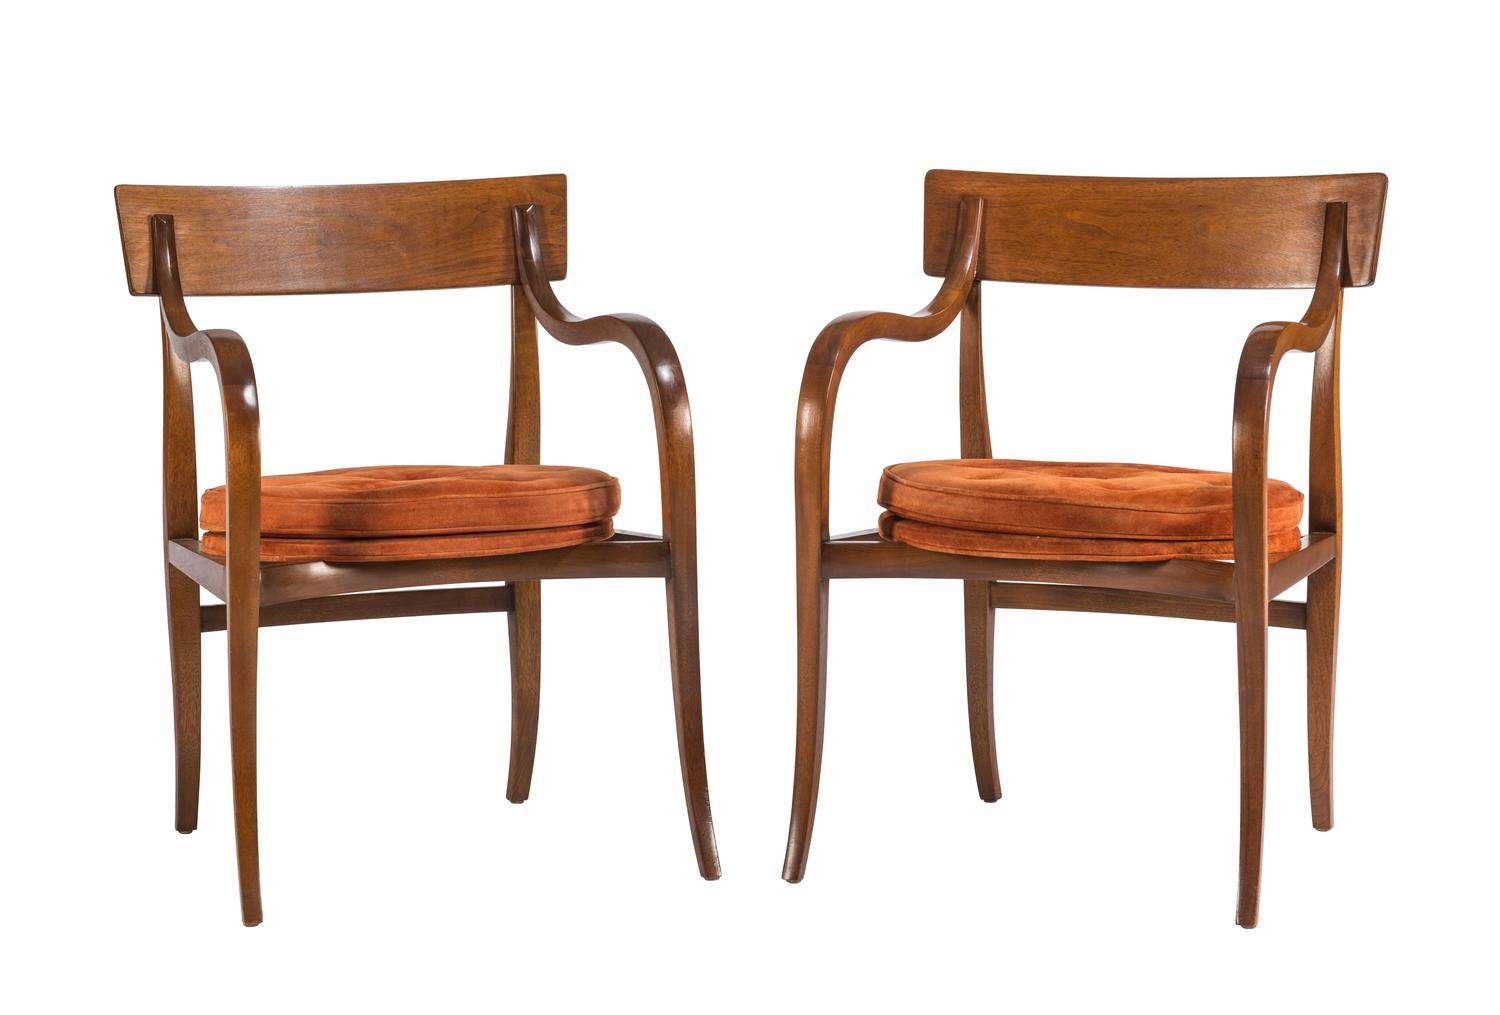 Pair of dunbar alexandria chairs by edward wormley for for Zfurniture alexandria